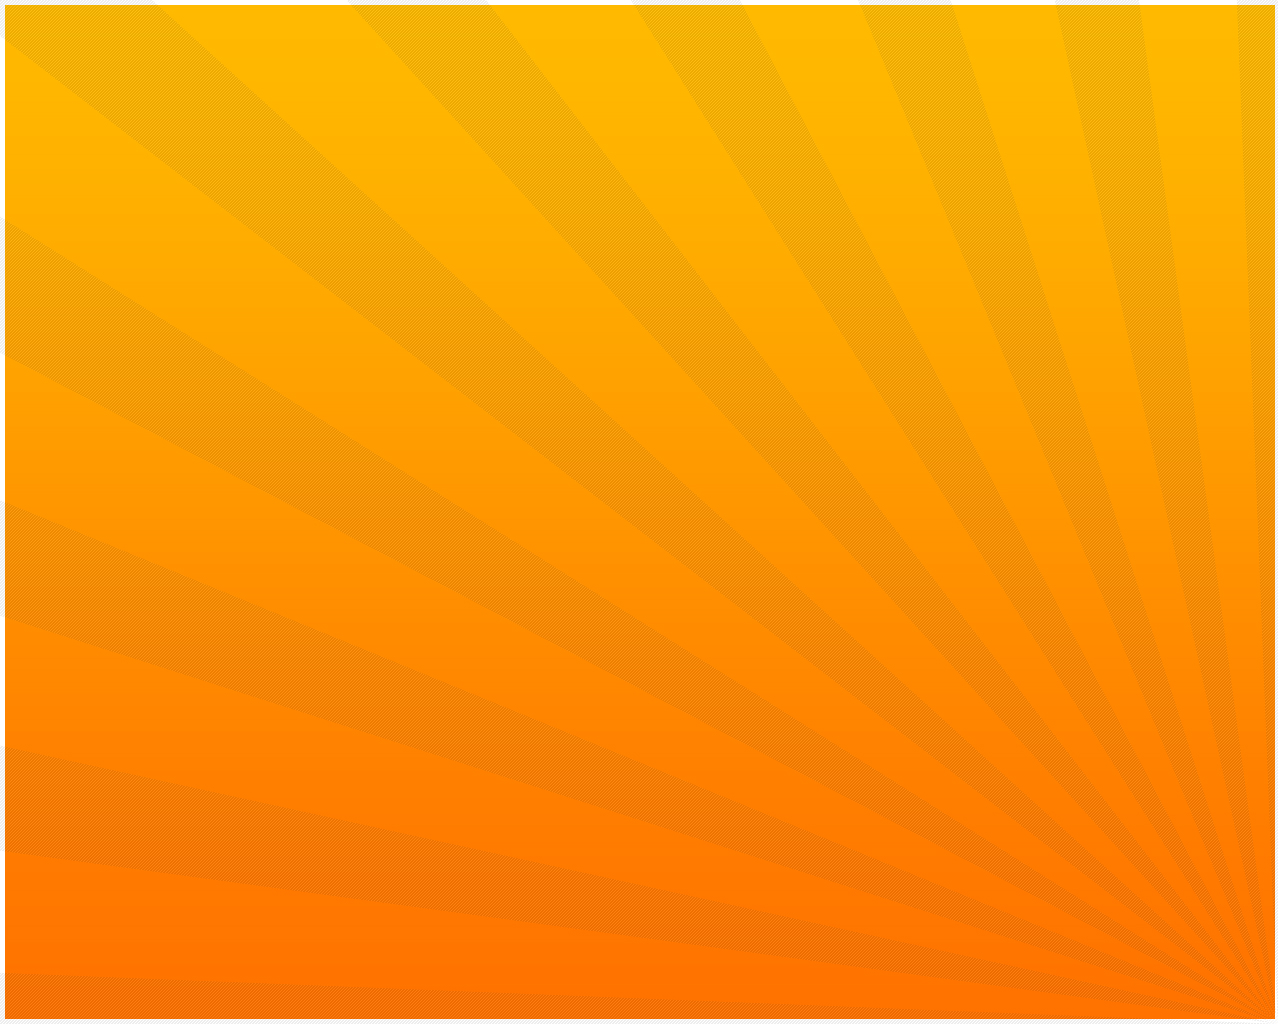 Orange Background Wallpaper